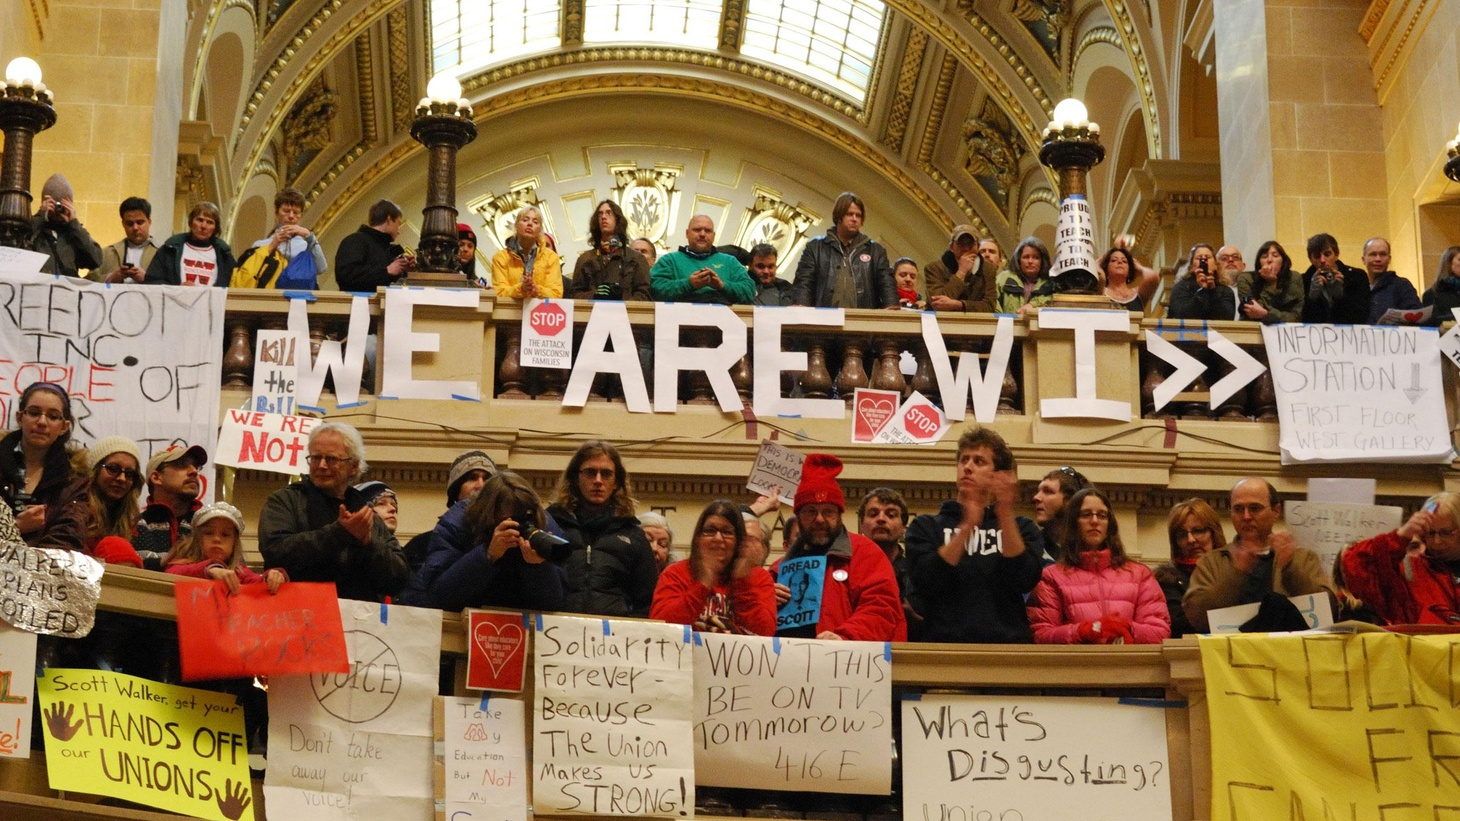 In Wisconsin, the dispute continues between a new Republican Governor and public workers. Will it spread to other states? Is it part of a national campaign to prevent government employees from forming unions? Also, Libya's government opens fire on civilians. On Reporter's Notebook, once deposed by his people, where can a dictator go?